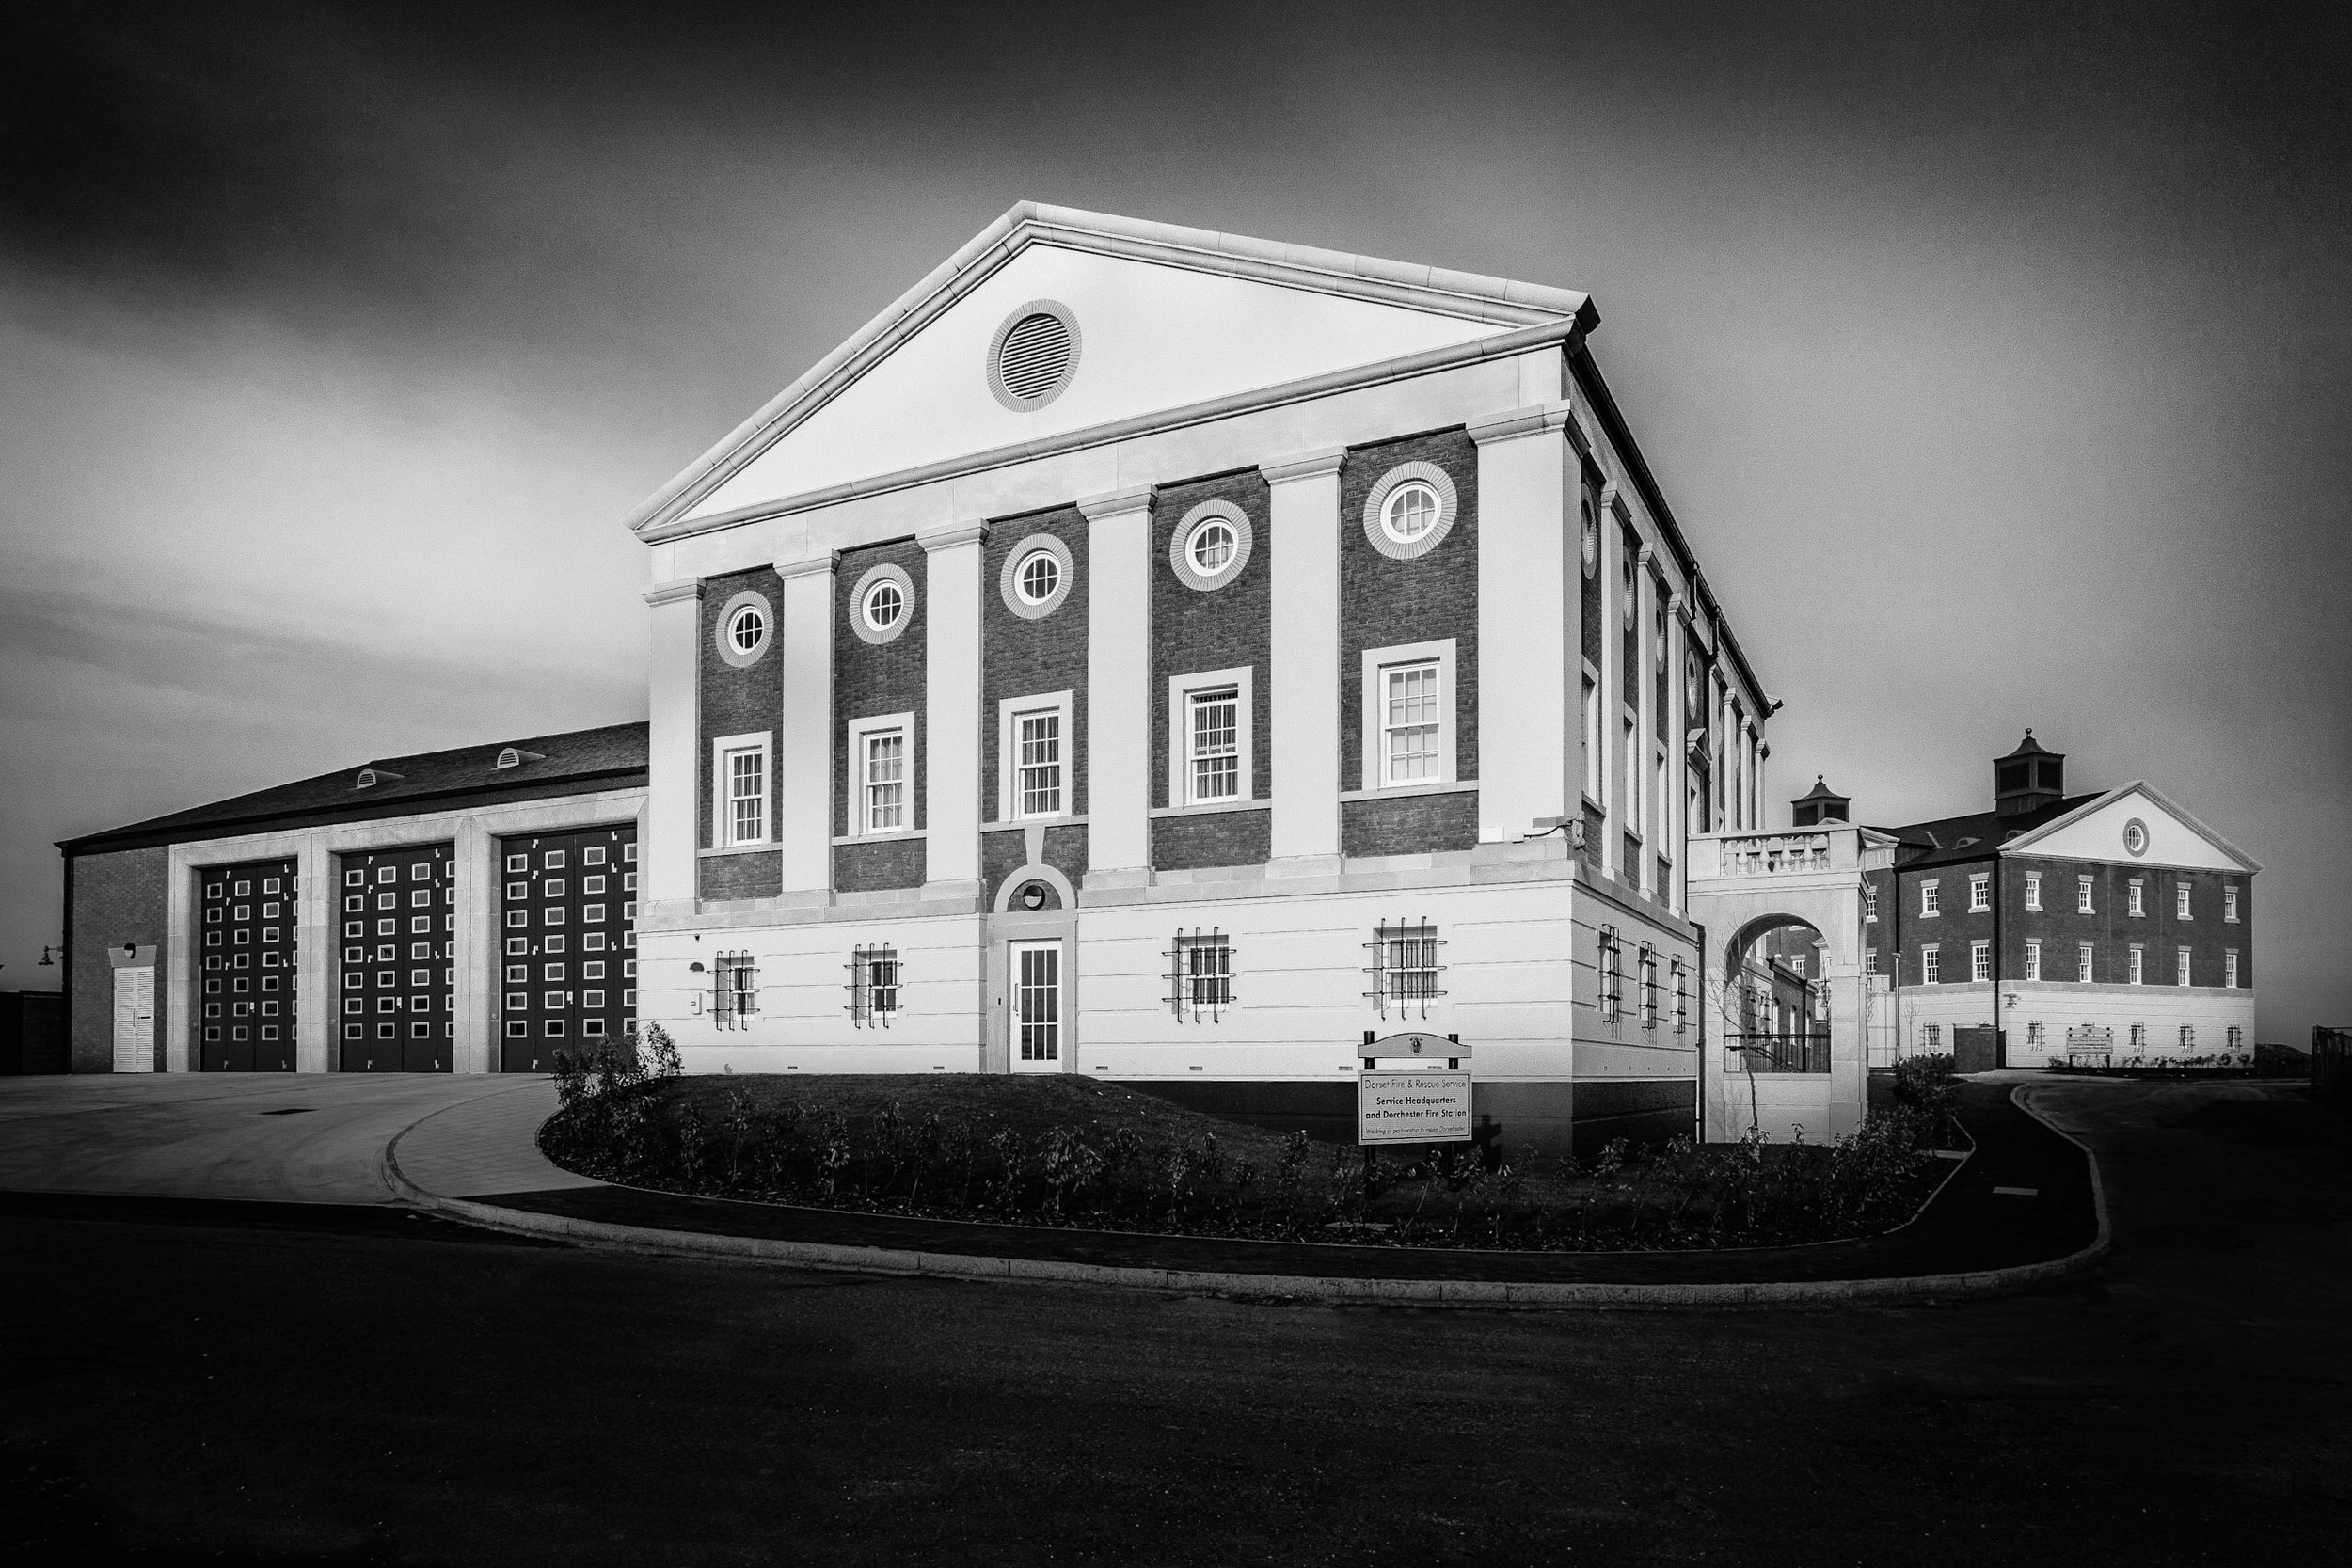 Black and white picture of the Dorchester Fire Station and HQ Building